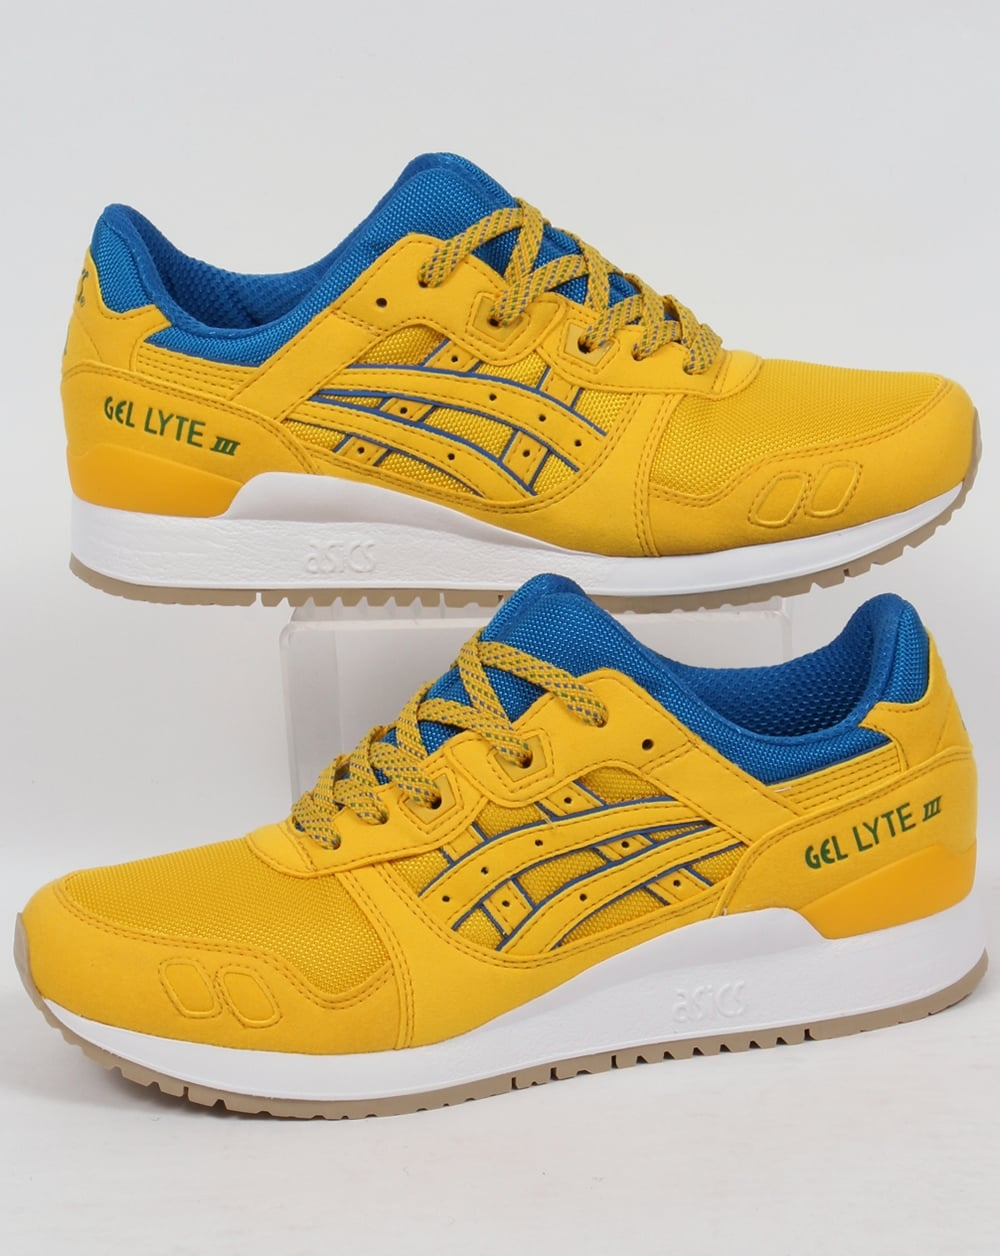 big sale b89e6 4dbb6 Asics Gel Lyte III Trainers Tai-chi Yellow